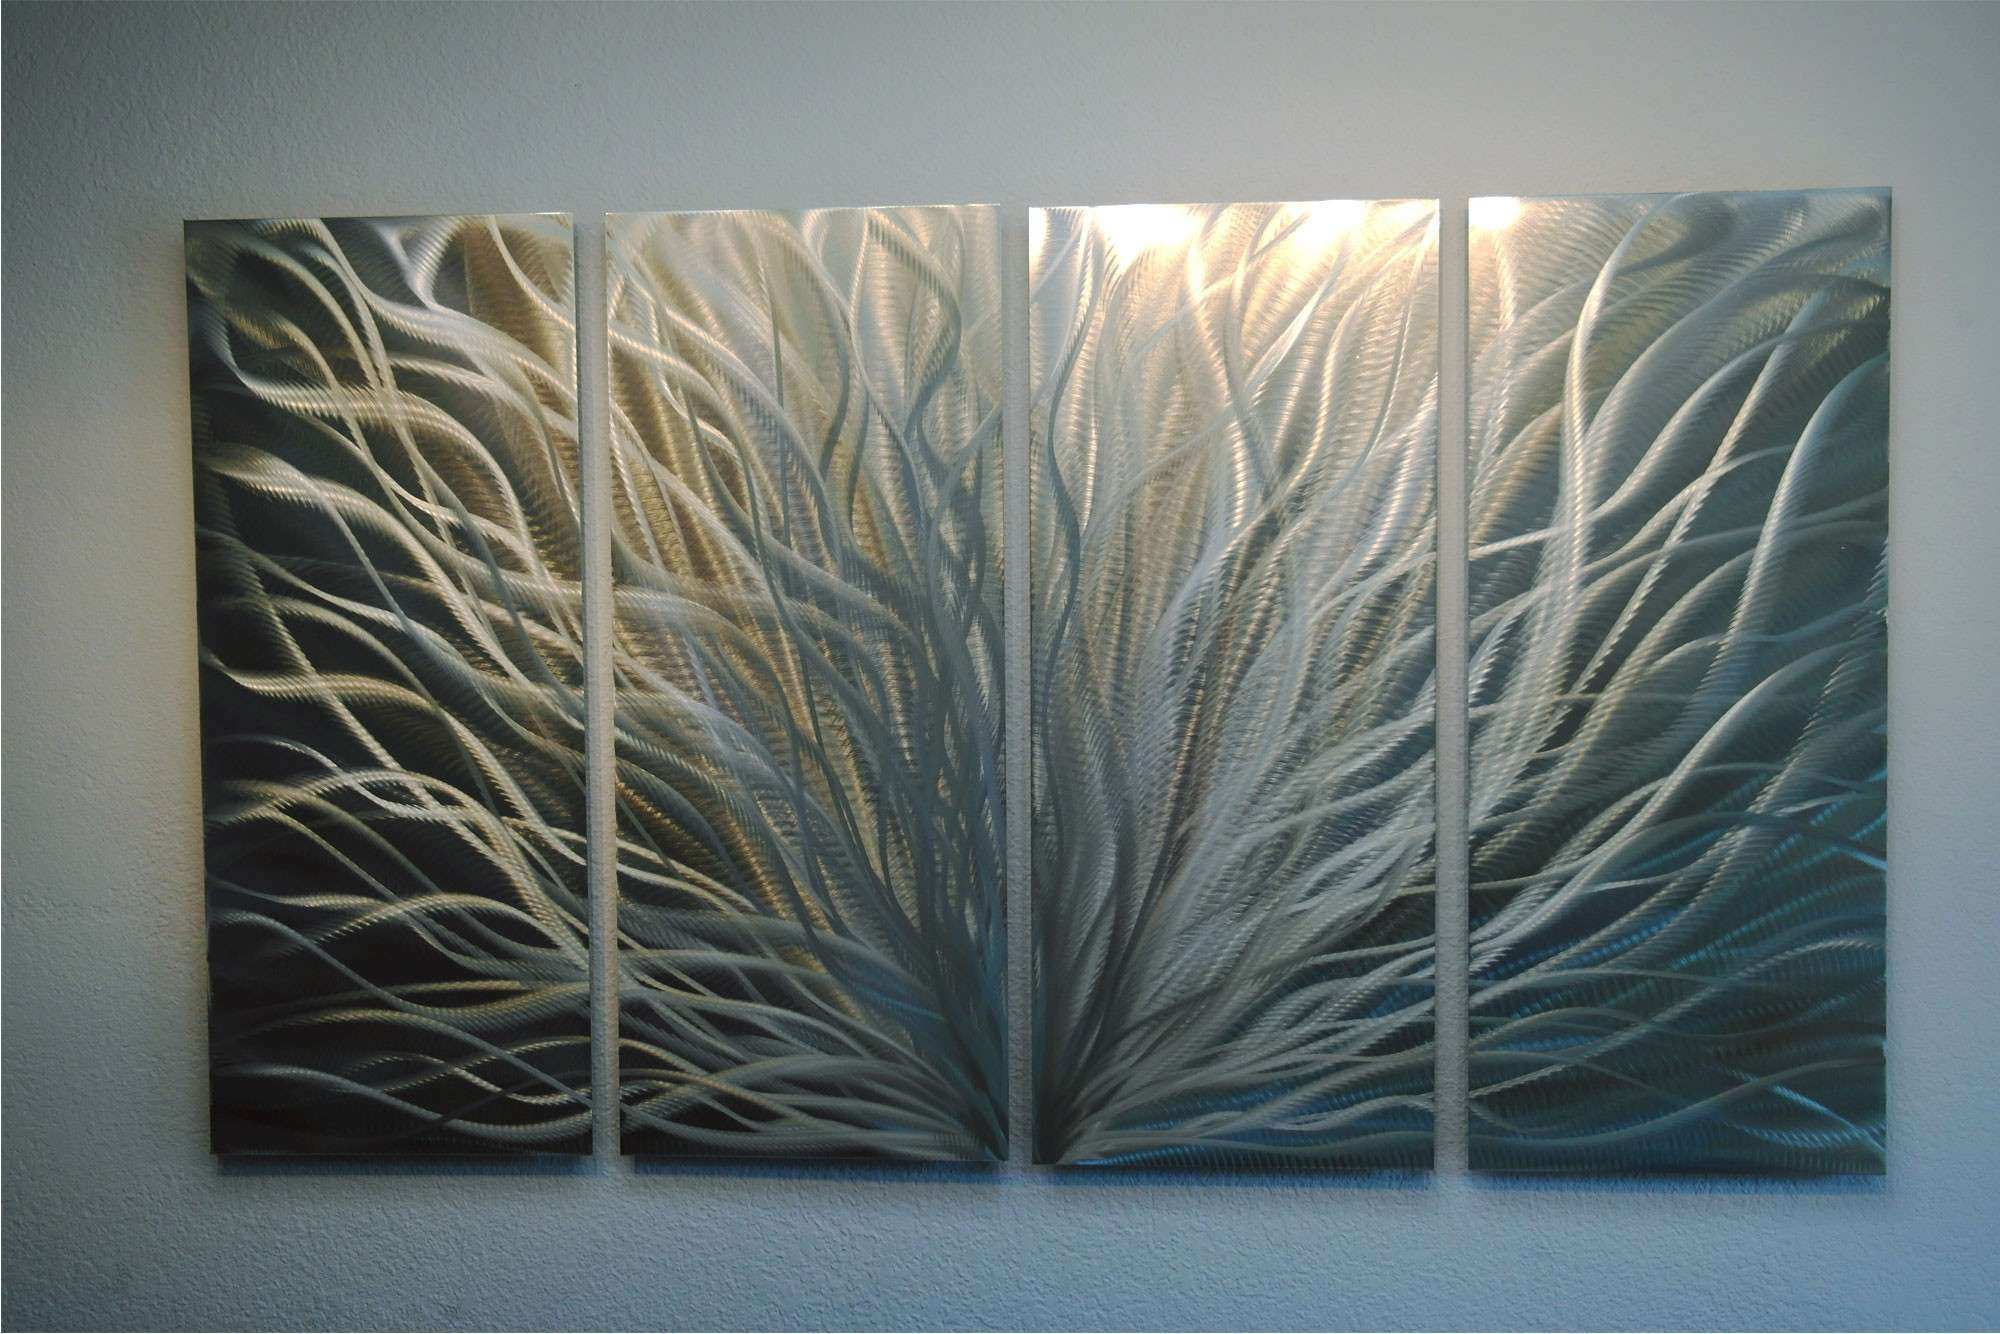 Radiance Silver and Gold 36x63 Abstract Metal Wall Art Contemporary Modern Decor · Inspiring